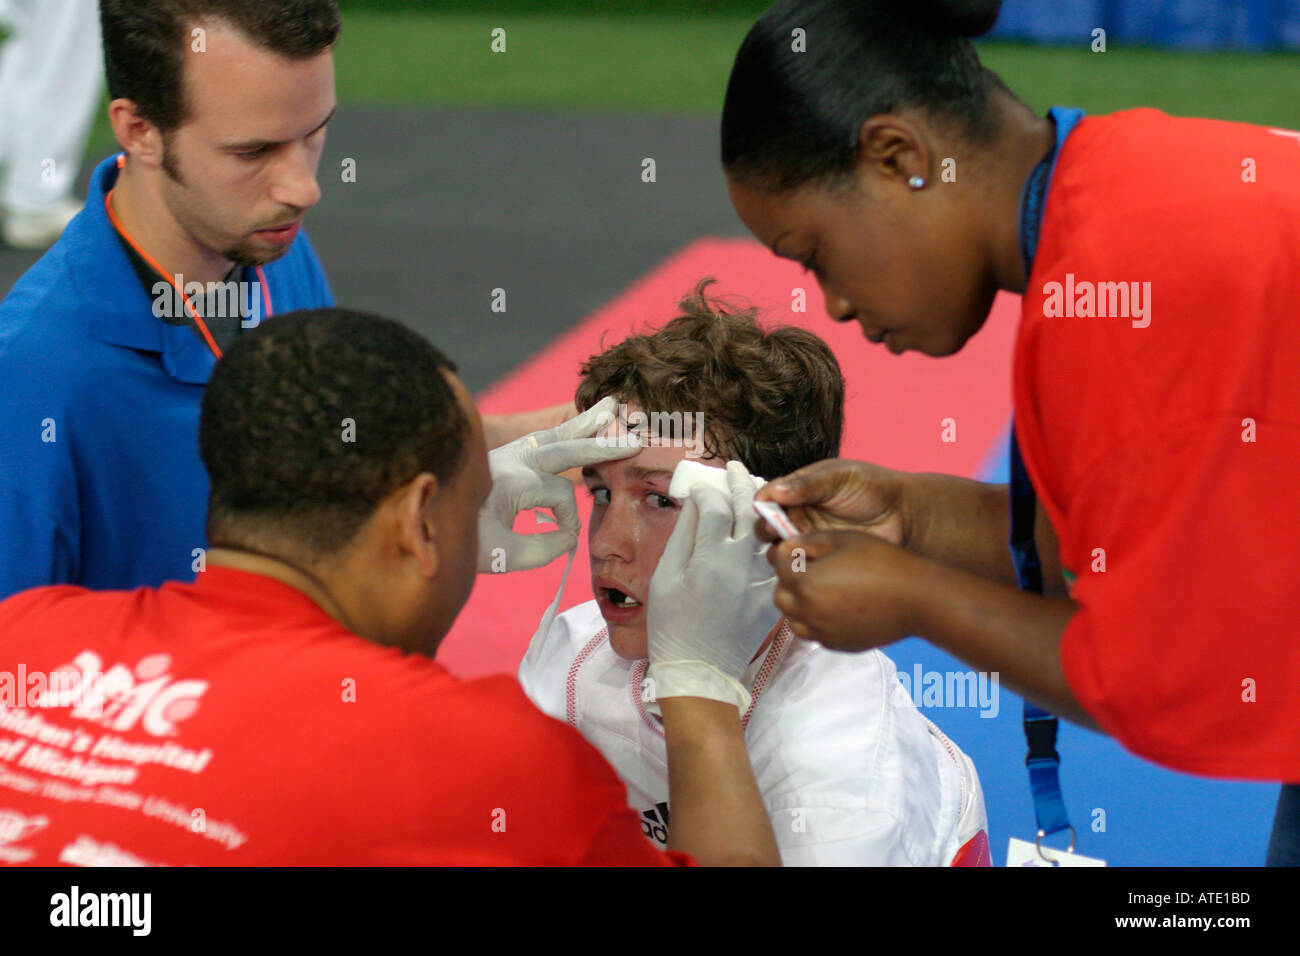 A trainer checks a boy s injury during the AAU Junior Olympics in Detroit - Stock Image